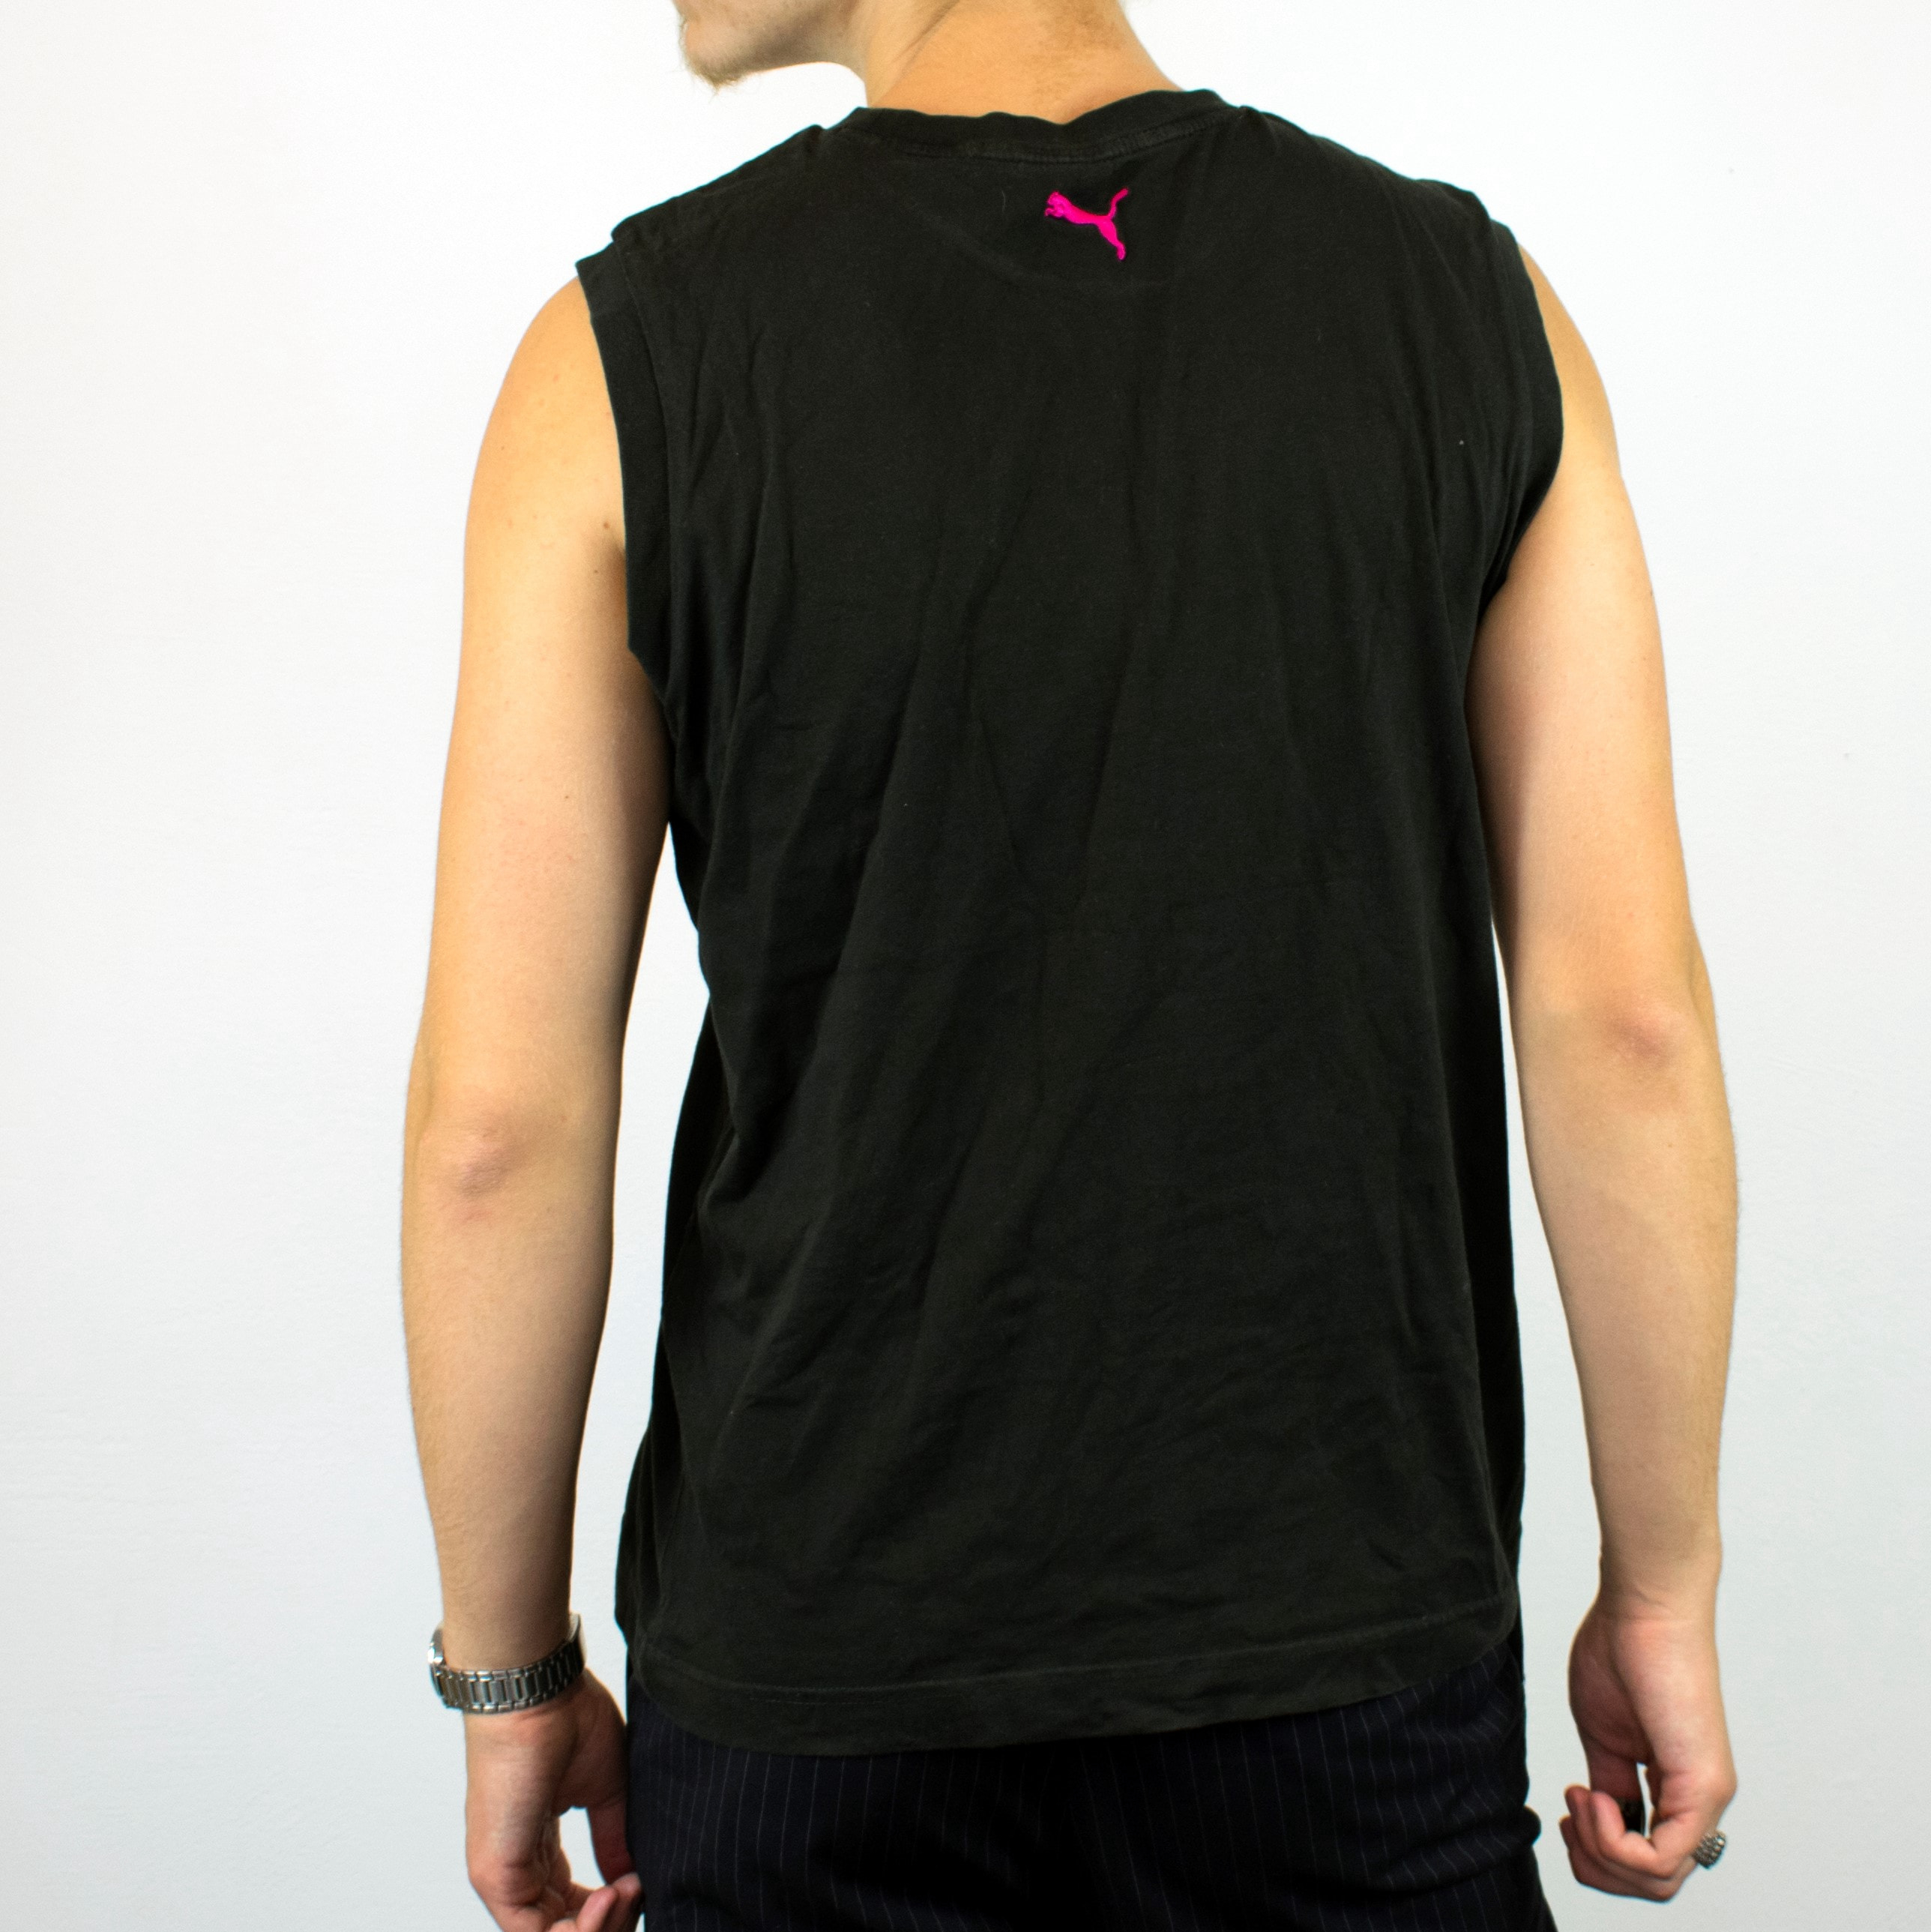 Unisex Vintage Puma sleeveless shirt in black has a big spellout on the front size M/L